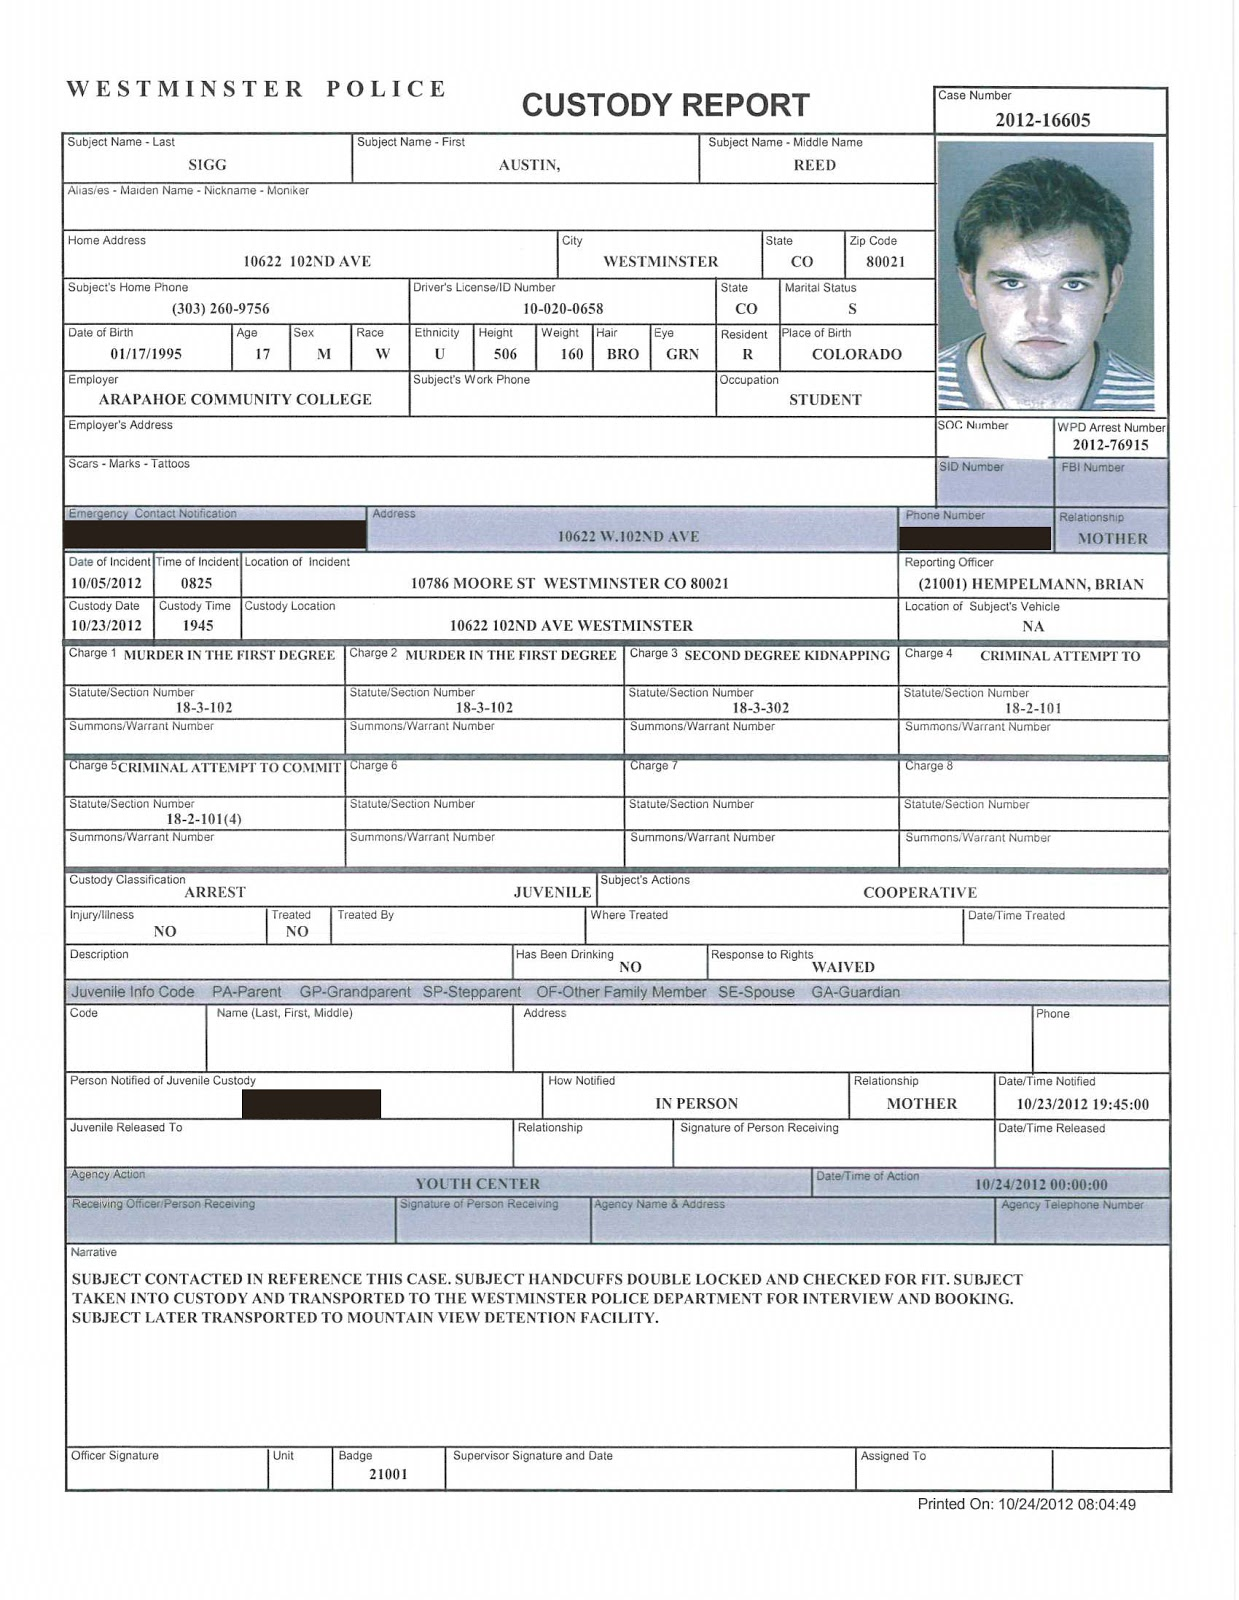 norway maine police department sex offender list in York